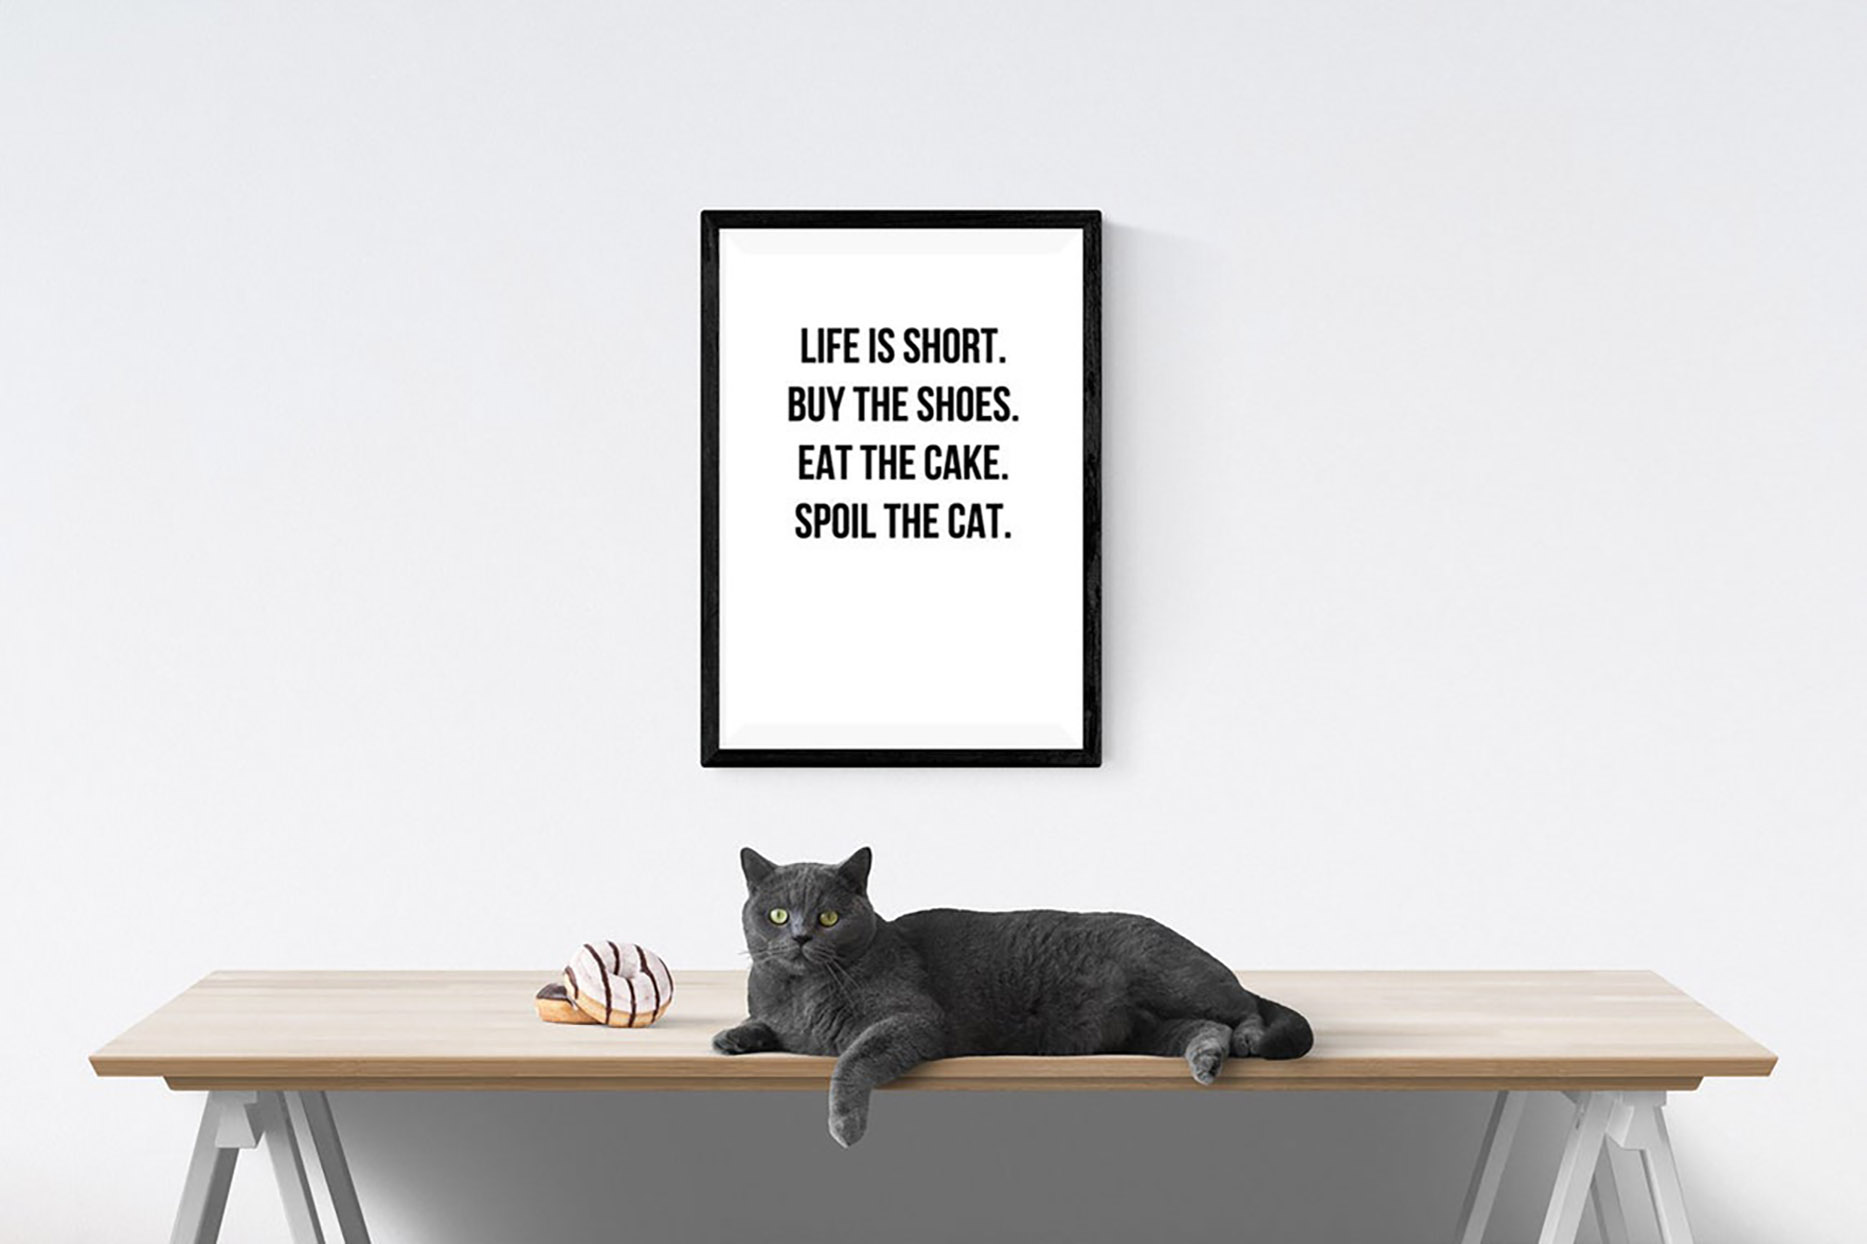 Funny cat quote print home decor gift poster reads Life is Short, buy the shoes, eat the cake, spoil the cat